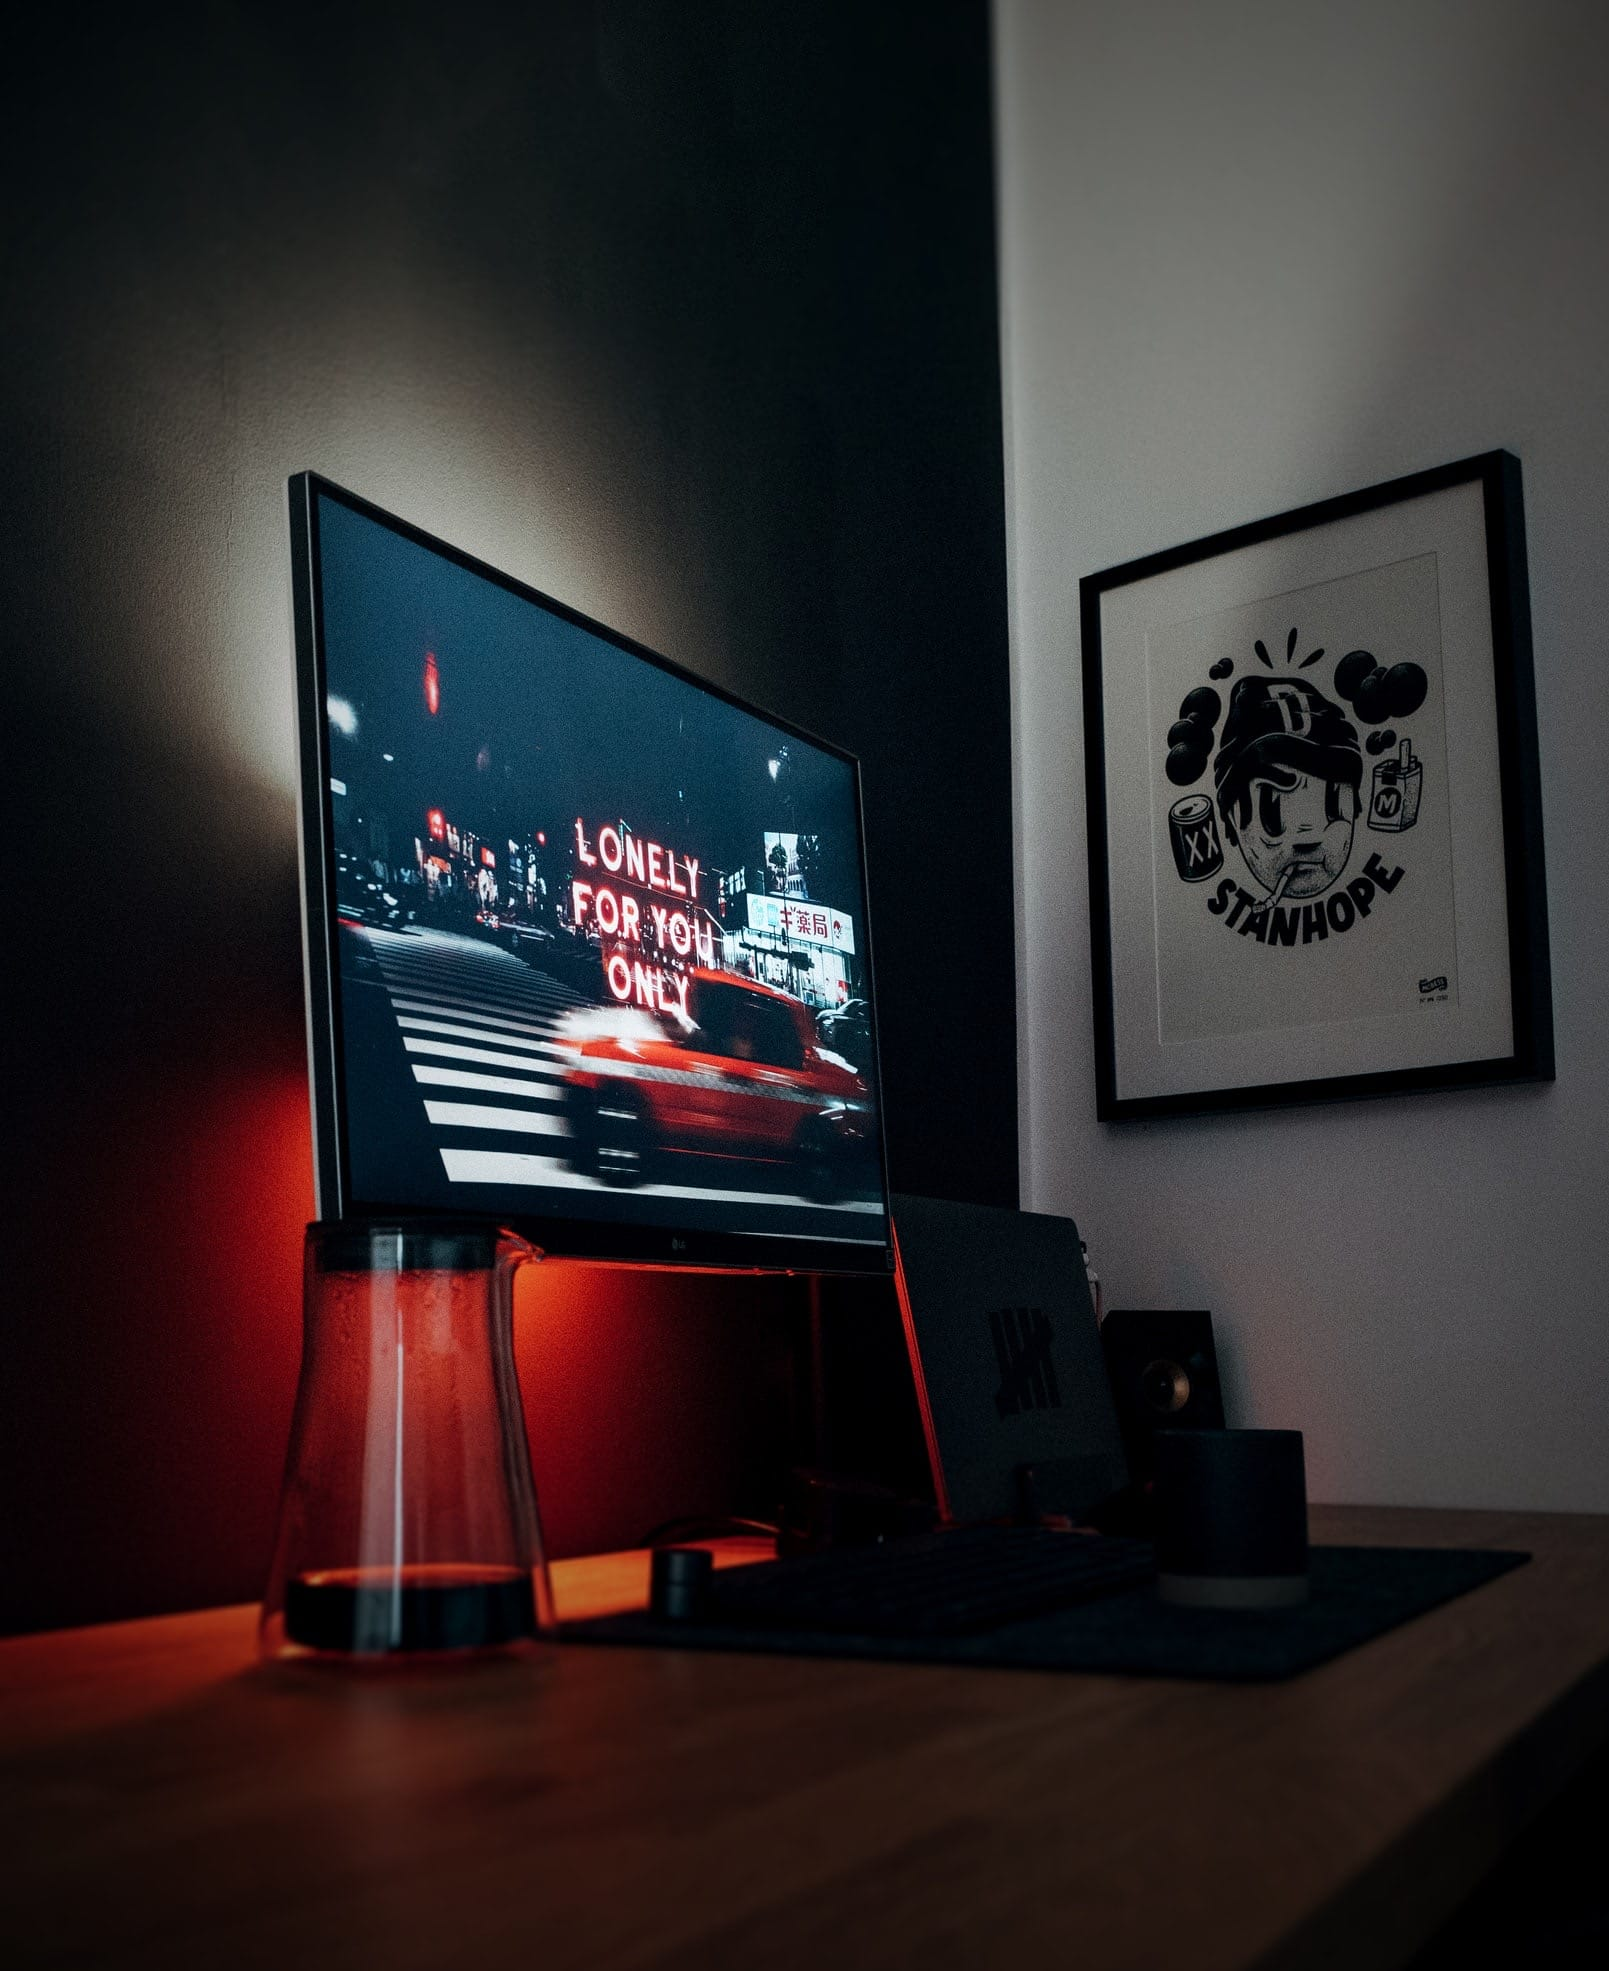 Tv with low red light set-up